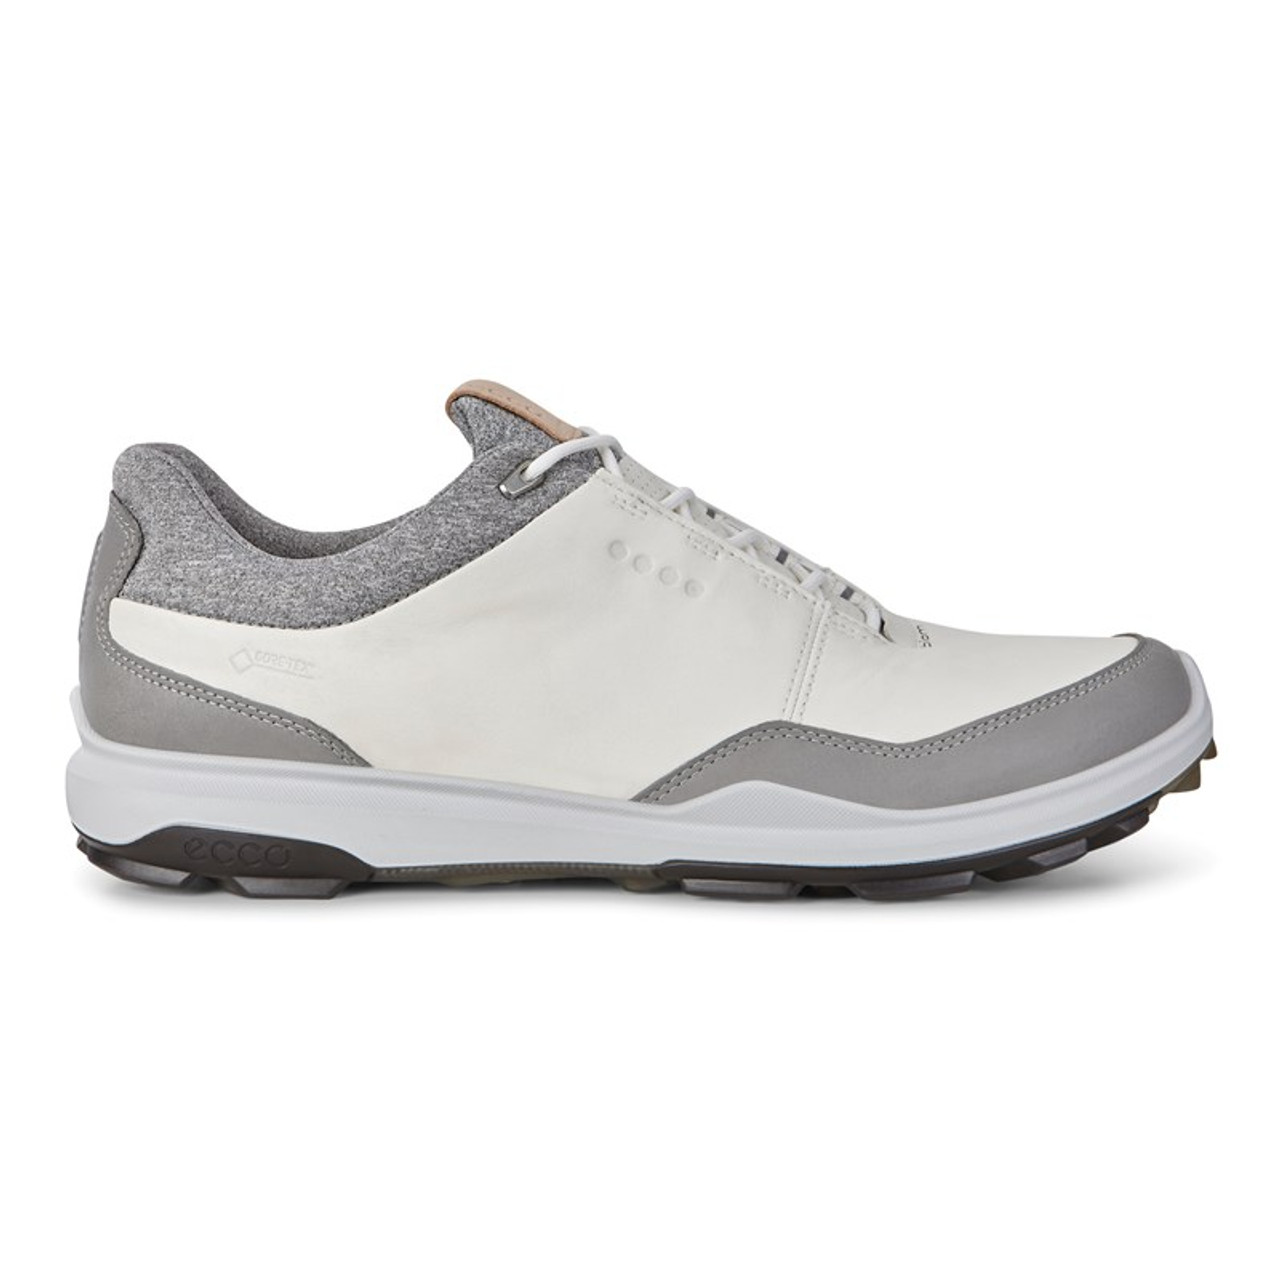 ecco golf shoes sale clearance,www